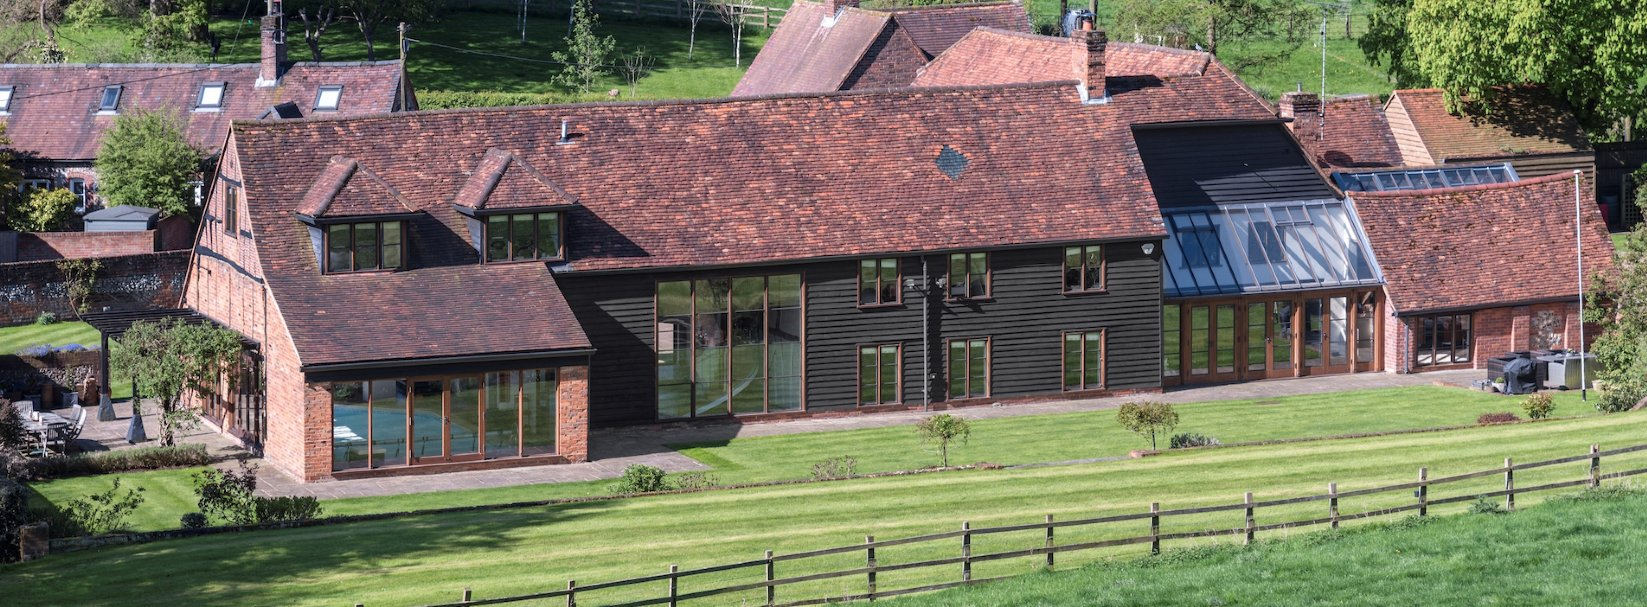 Savills Residential Property 6 Of The Best Barn Conversions